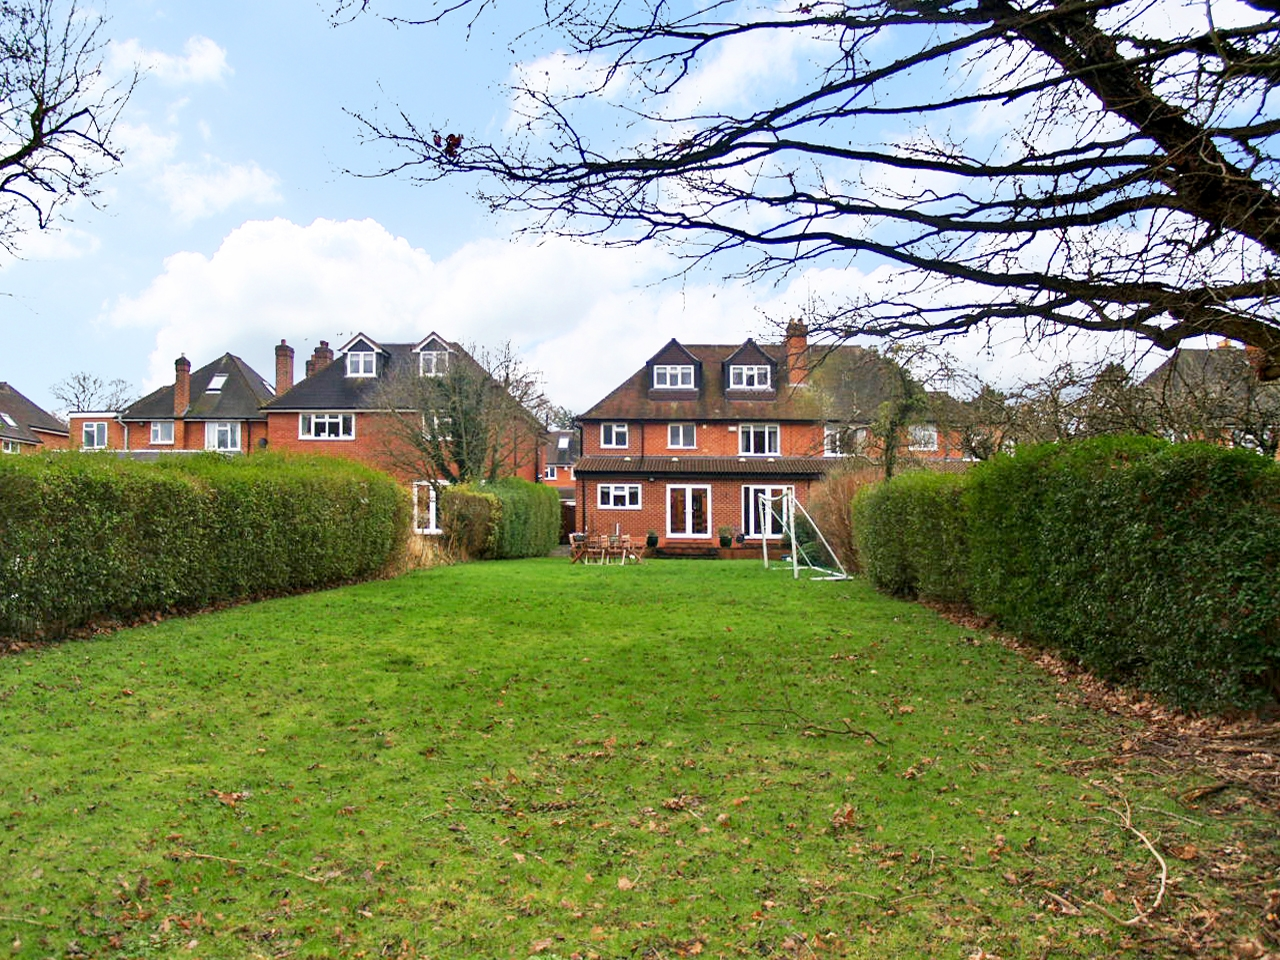 5 bedroom semi detached house SSTC in Solihull - photograph 11.